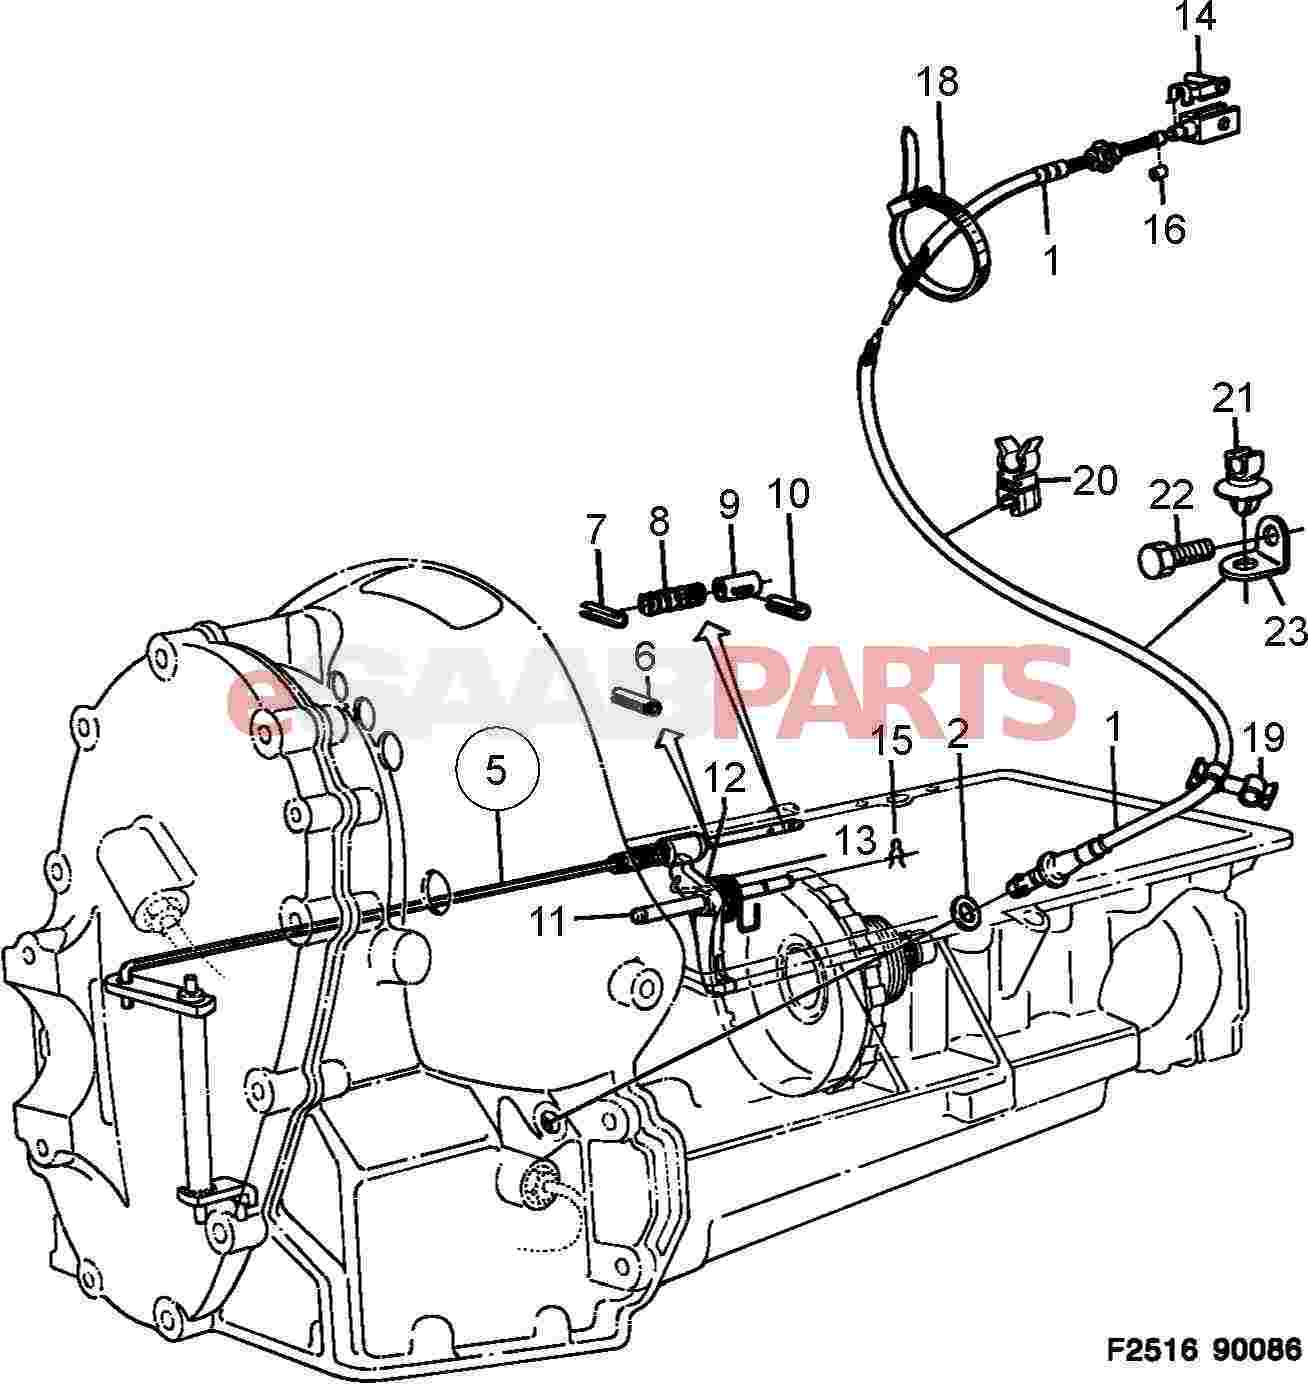 1992 saab 900 wiring diagram  u2022 wiring diagram for free